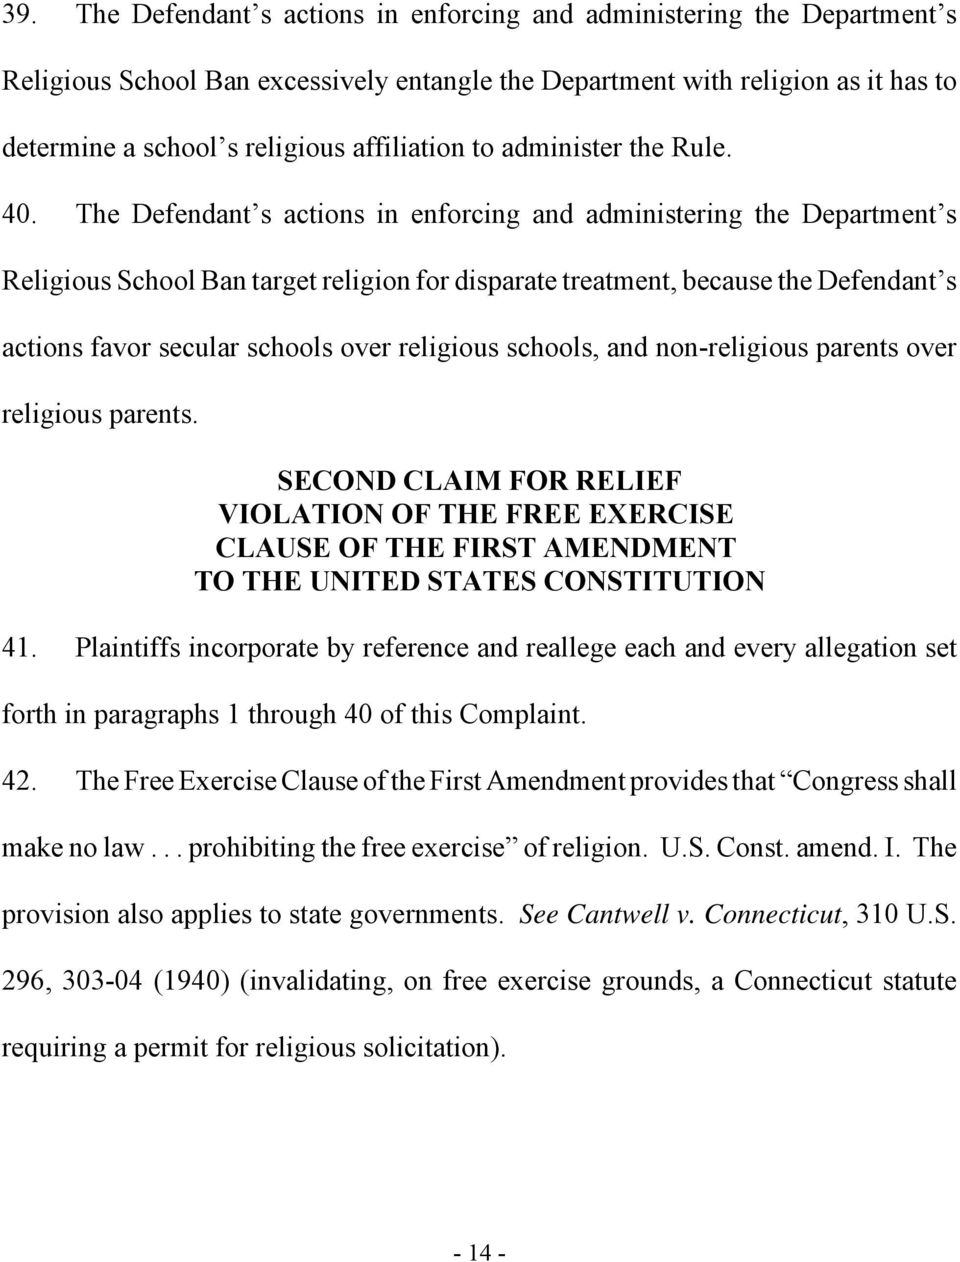 The Defendant s actions in enforcing and administering the Department s Religious School Ban target religion for disparate treatment, because the Defendant s actions favor secular schools over